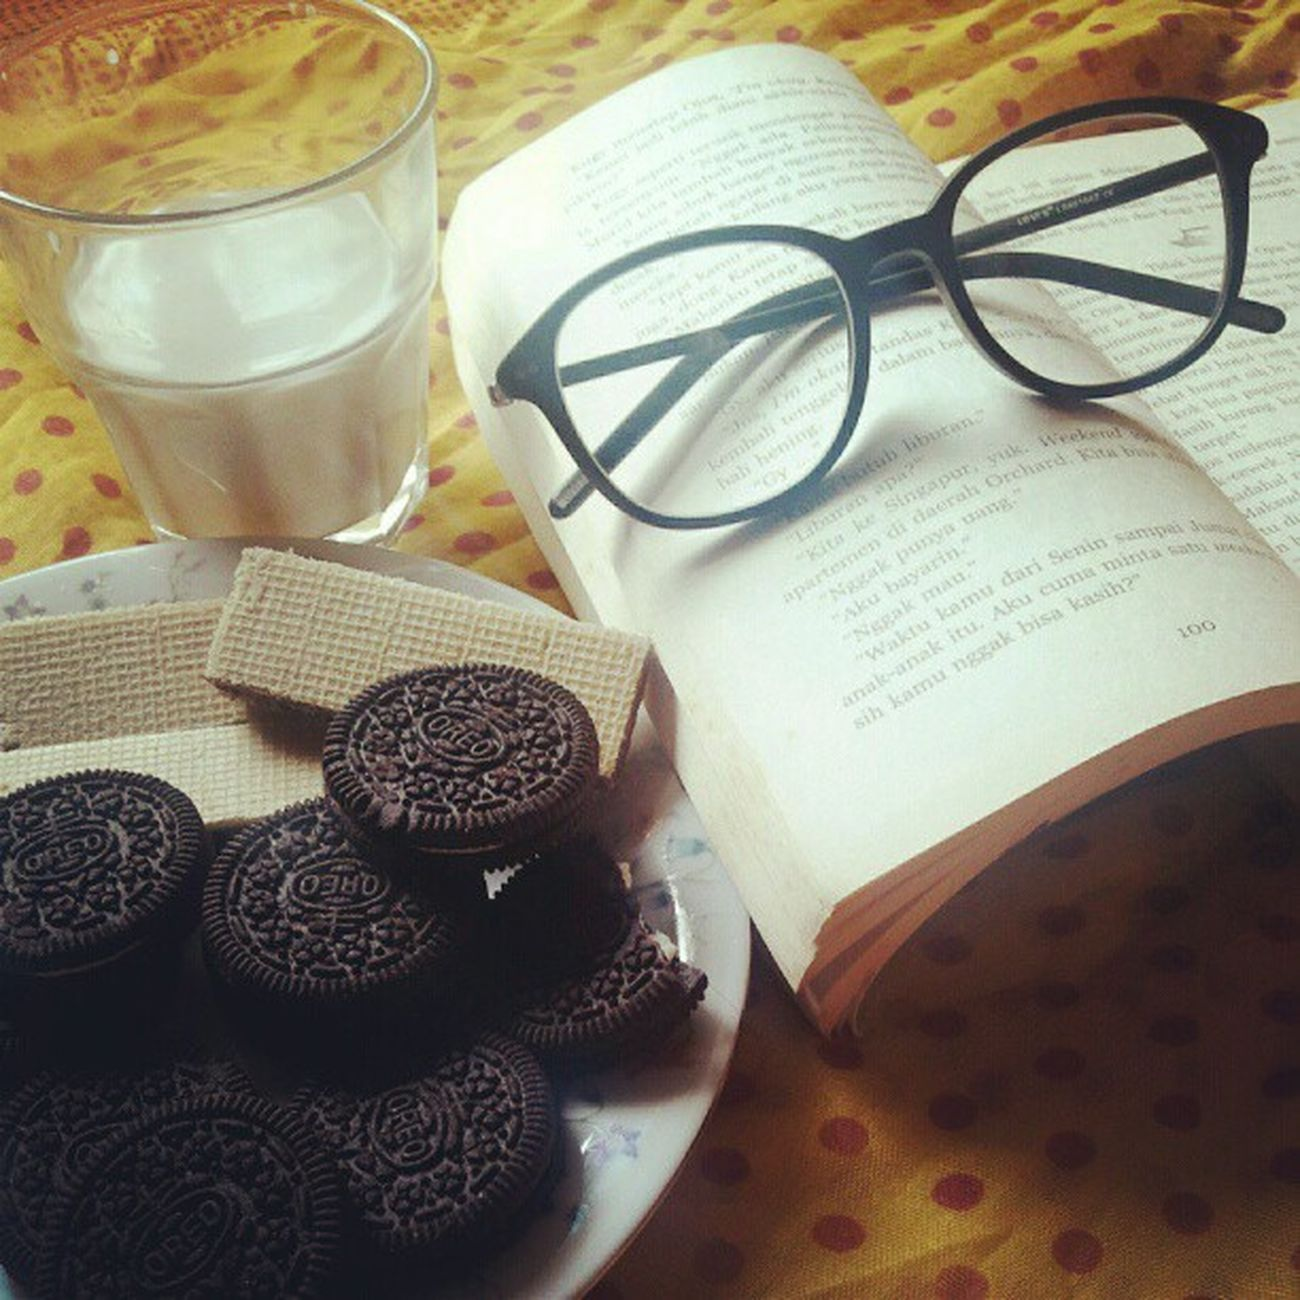 Mykindofafternoon Resting Tired Enjoymyday enjoy afternoon reading book glassesdip oreo milk wafers